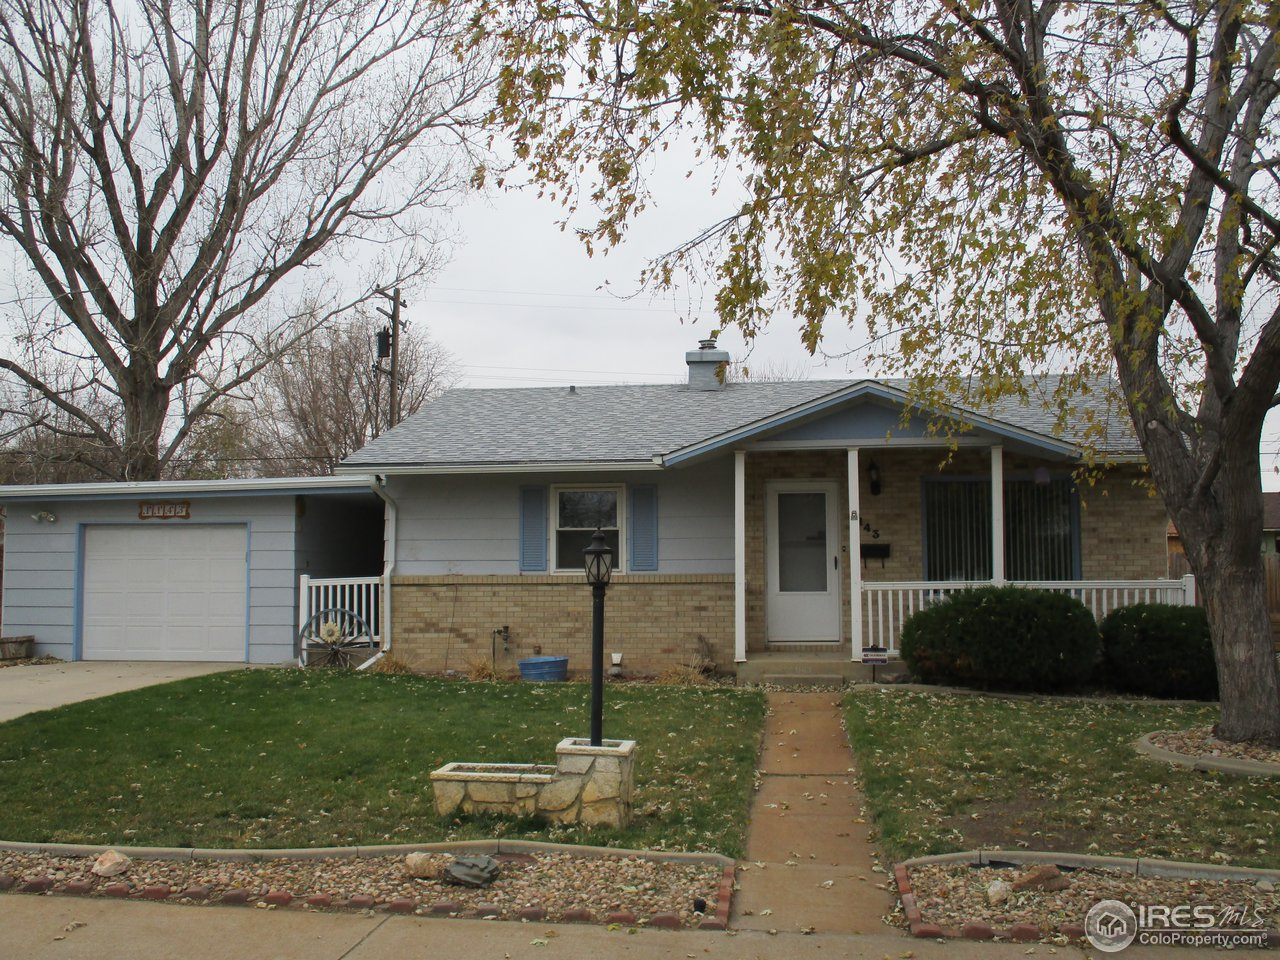 1143 32ND AVE, GREELEY, CO 80634